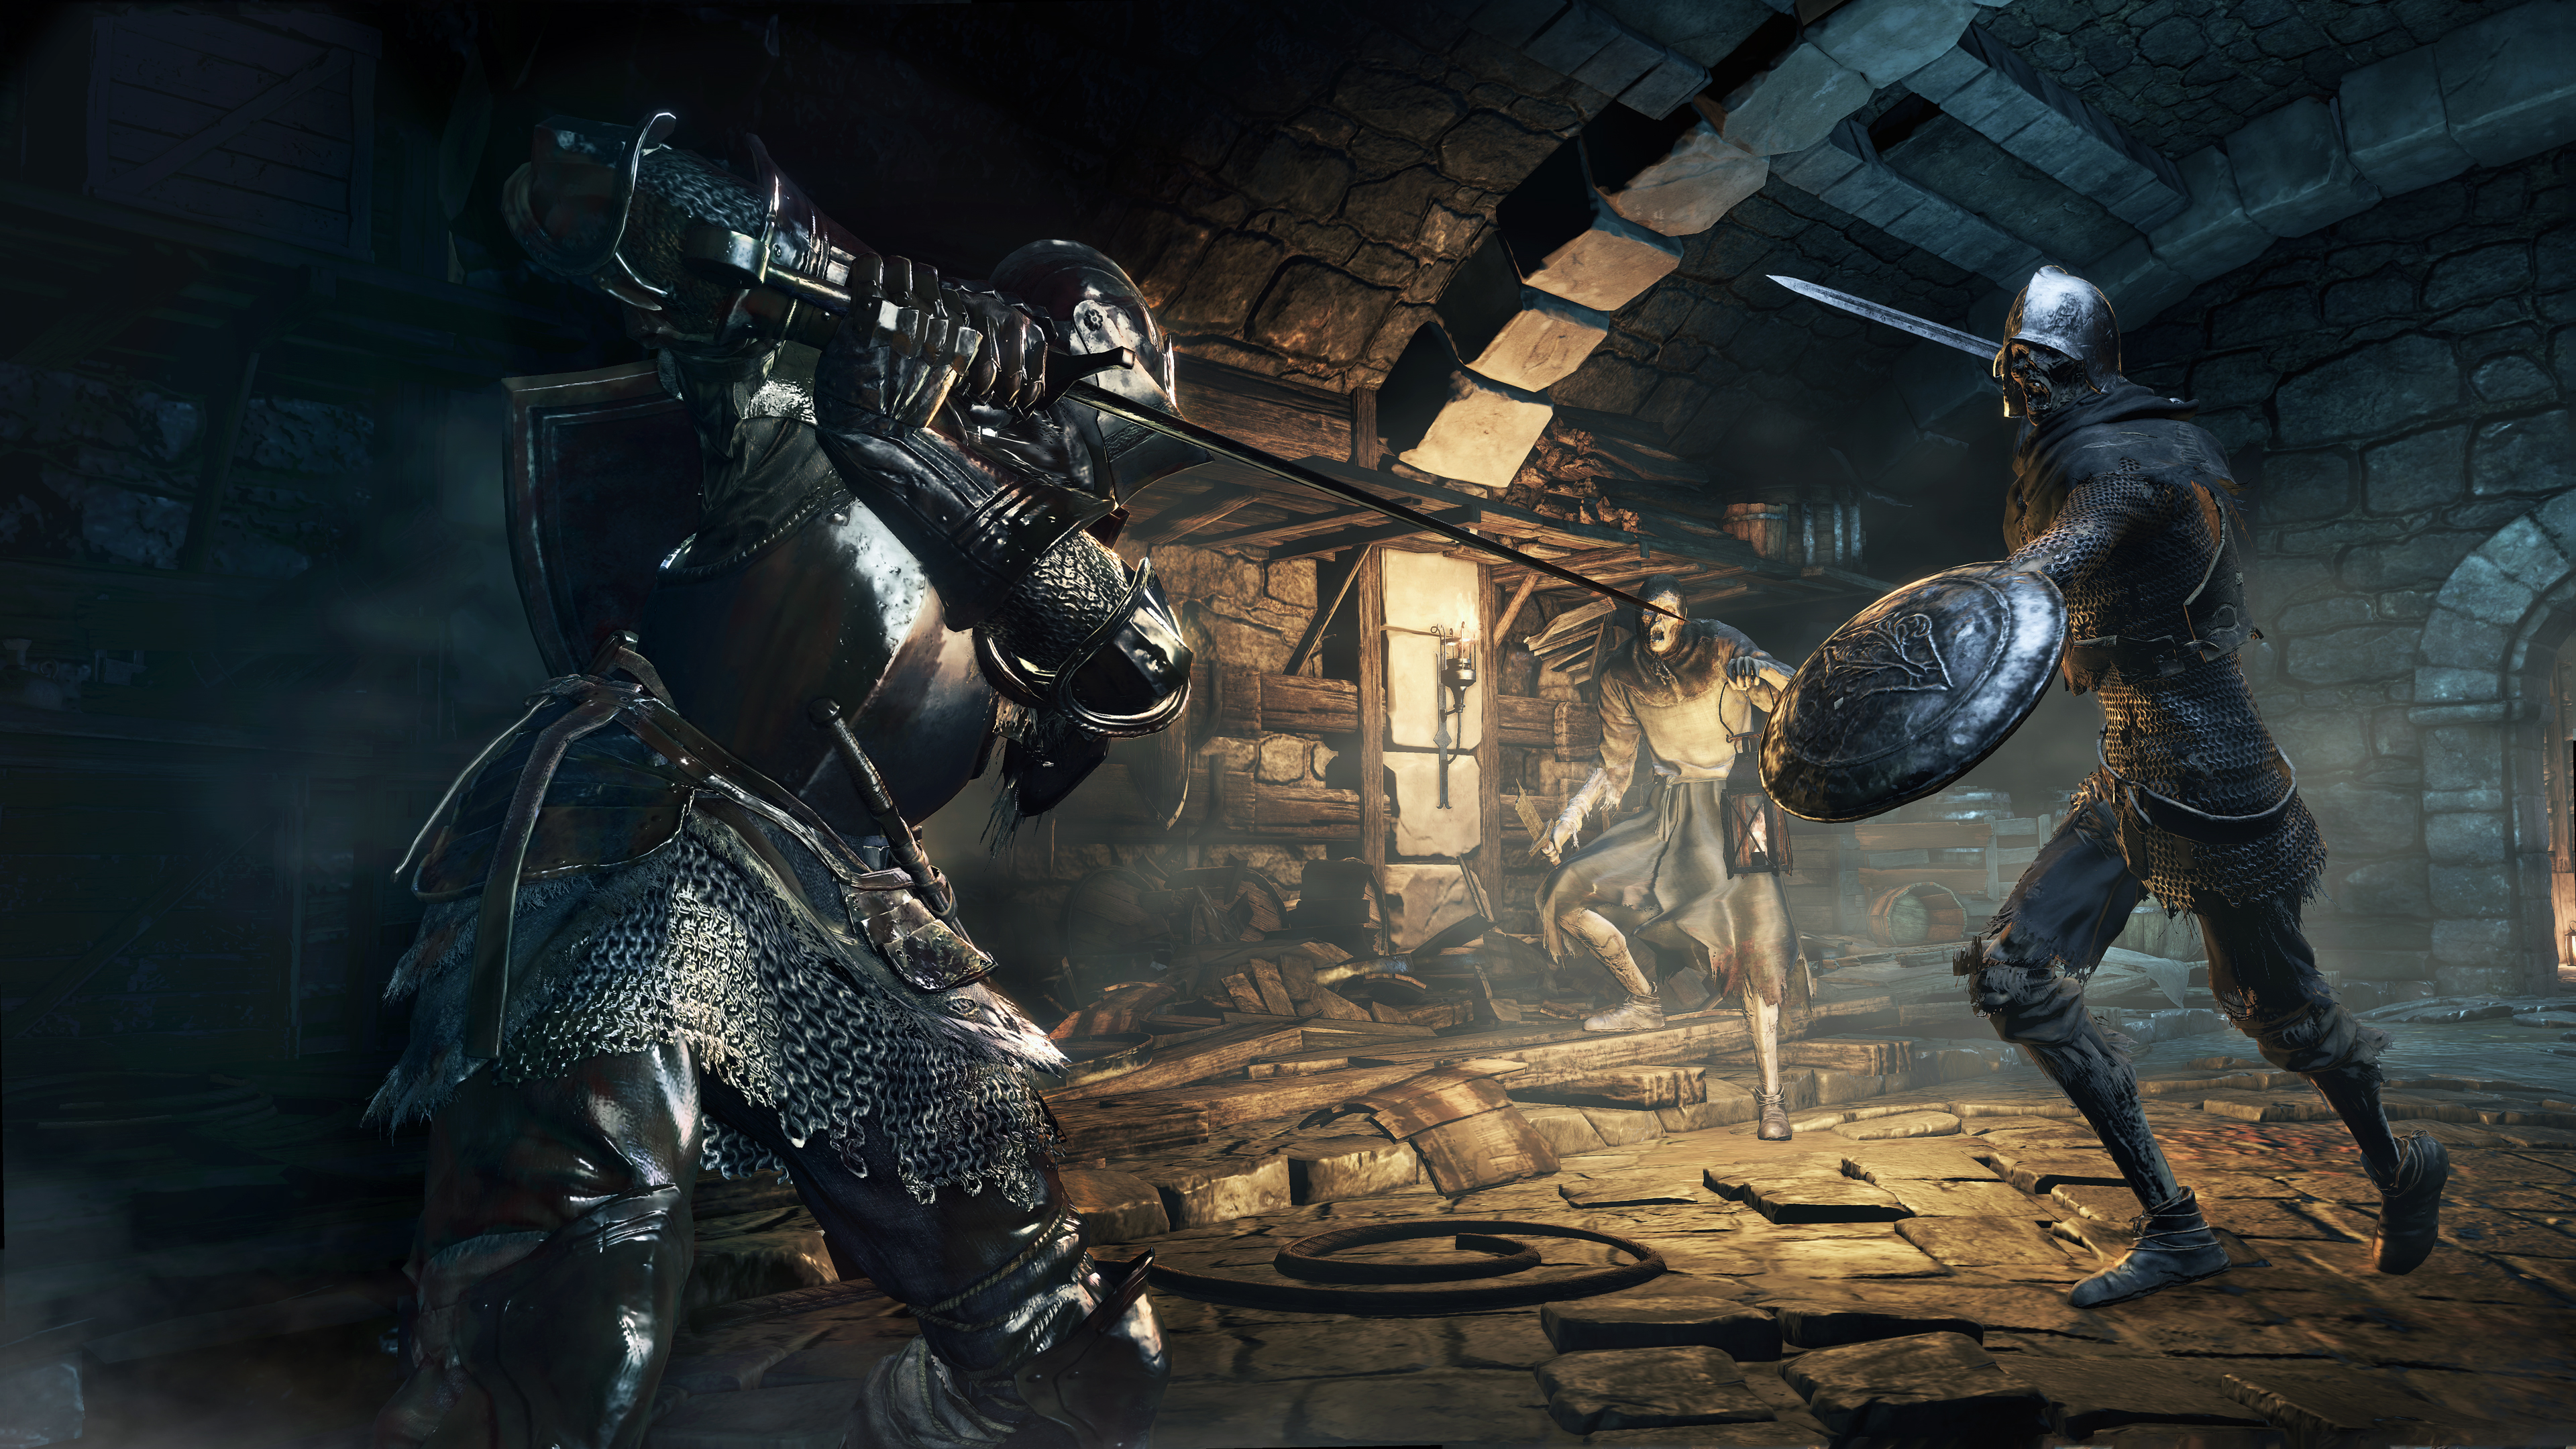 Characters from video game, Dark Souls 3, 2 people in armor fighting